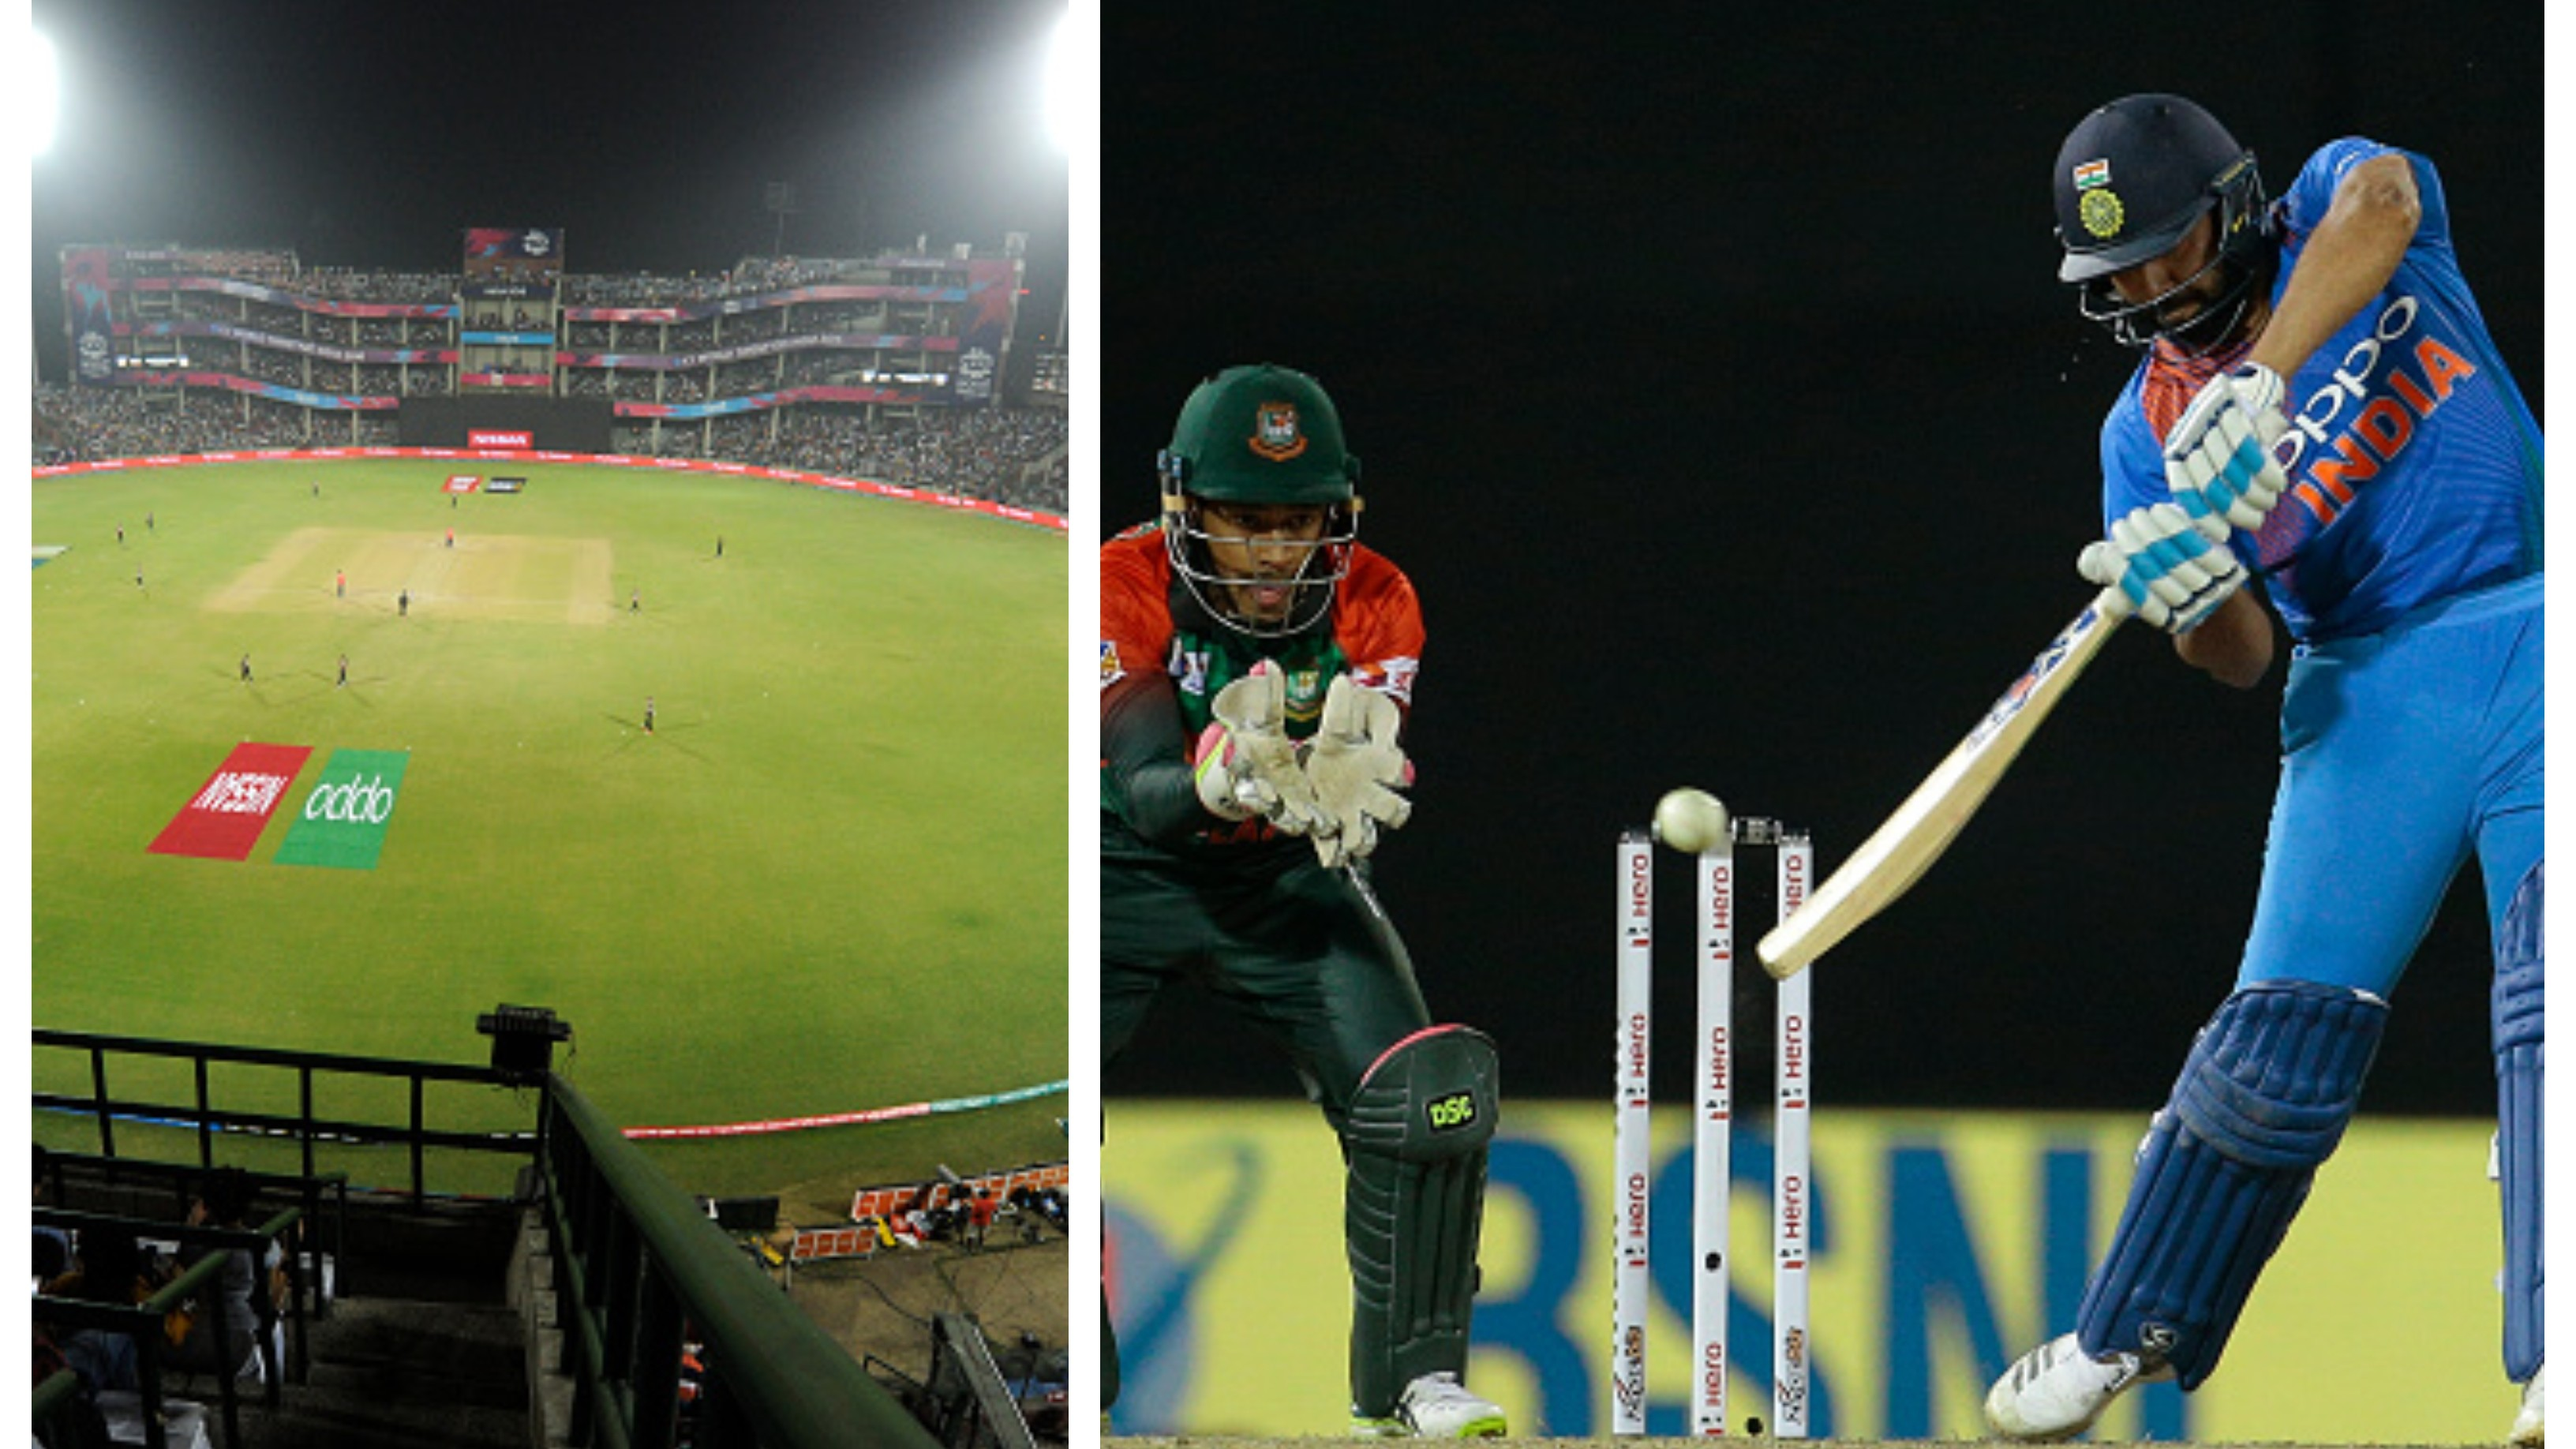 IND v BAN 2019: Delhi to host first T20I between India and Bangladesh despite poor air quality